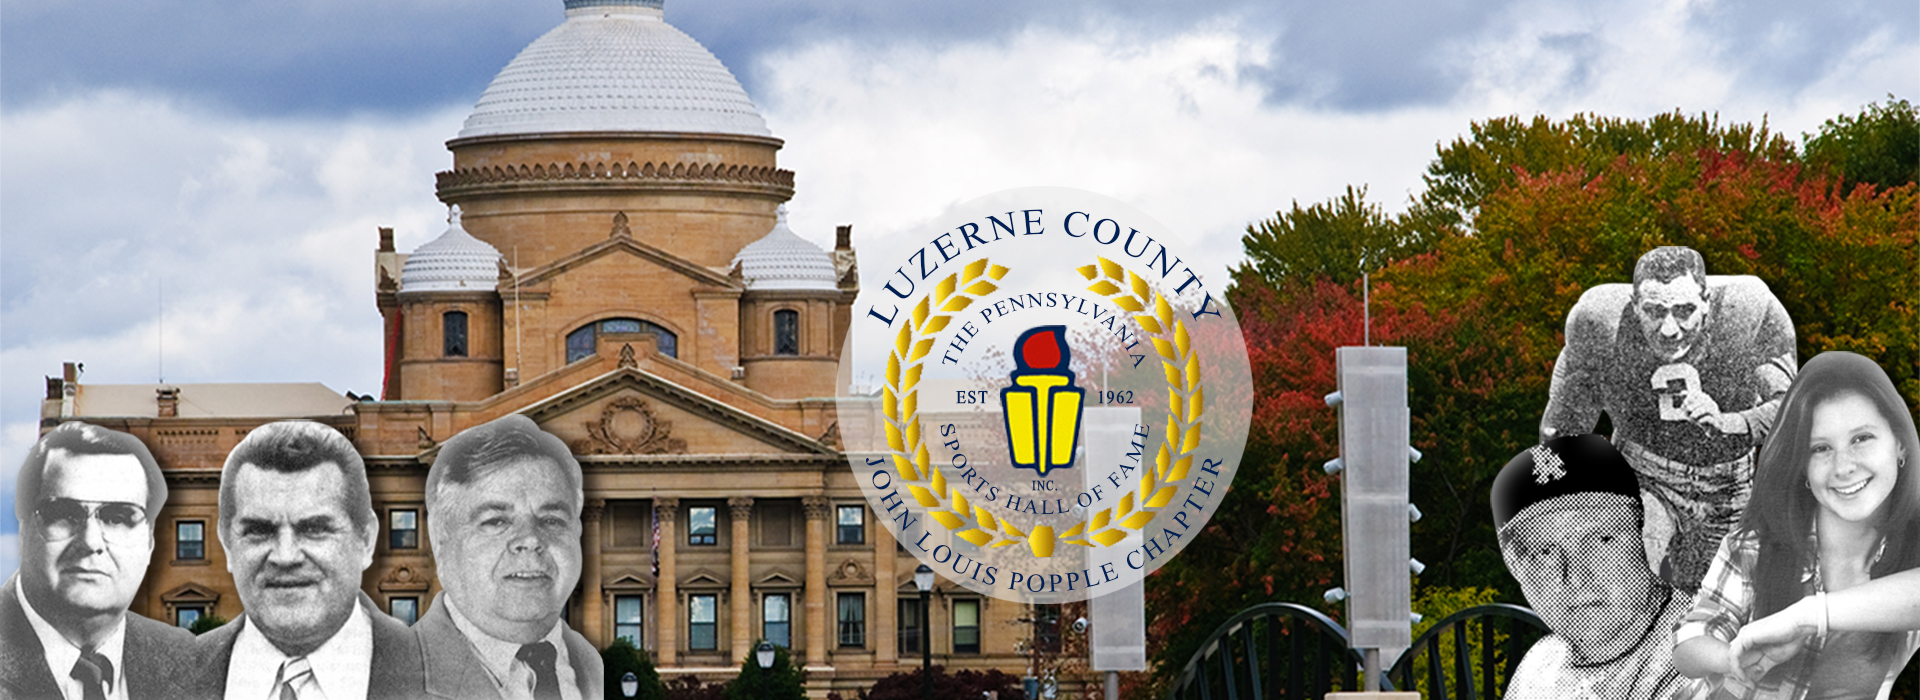 luzerne county courthouse with logo